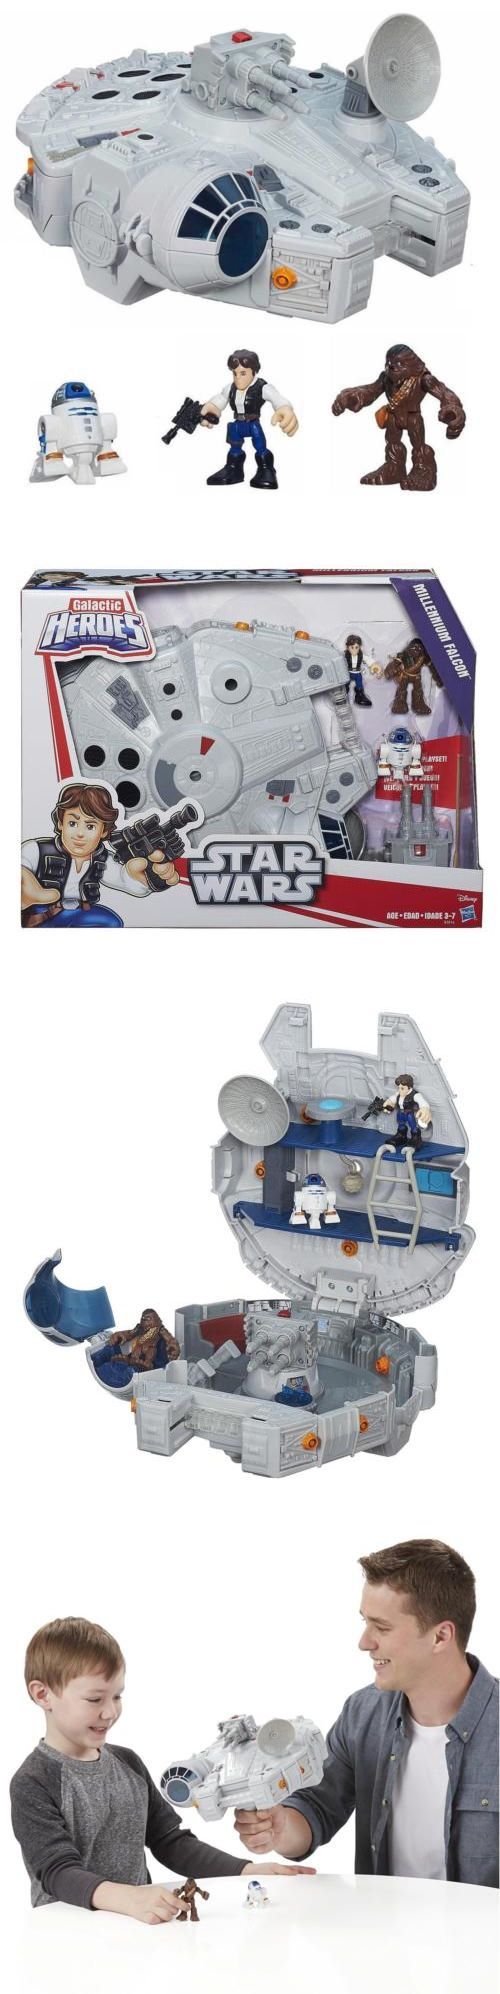 Playskool 2576: Playskool Star Wars Galactic Heroes Millennium Falcon And Figures Cannon Toy Chop -> BUY IT NOW ONLY: $53.14 on eBay!